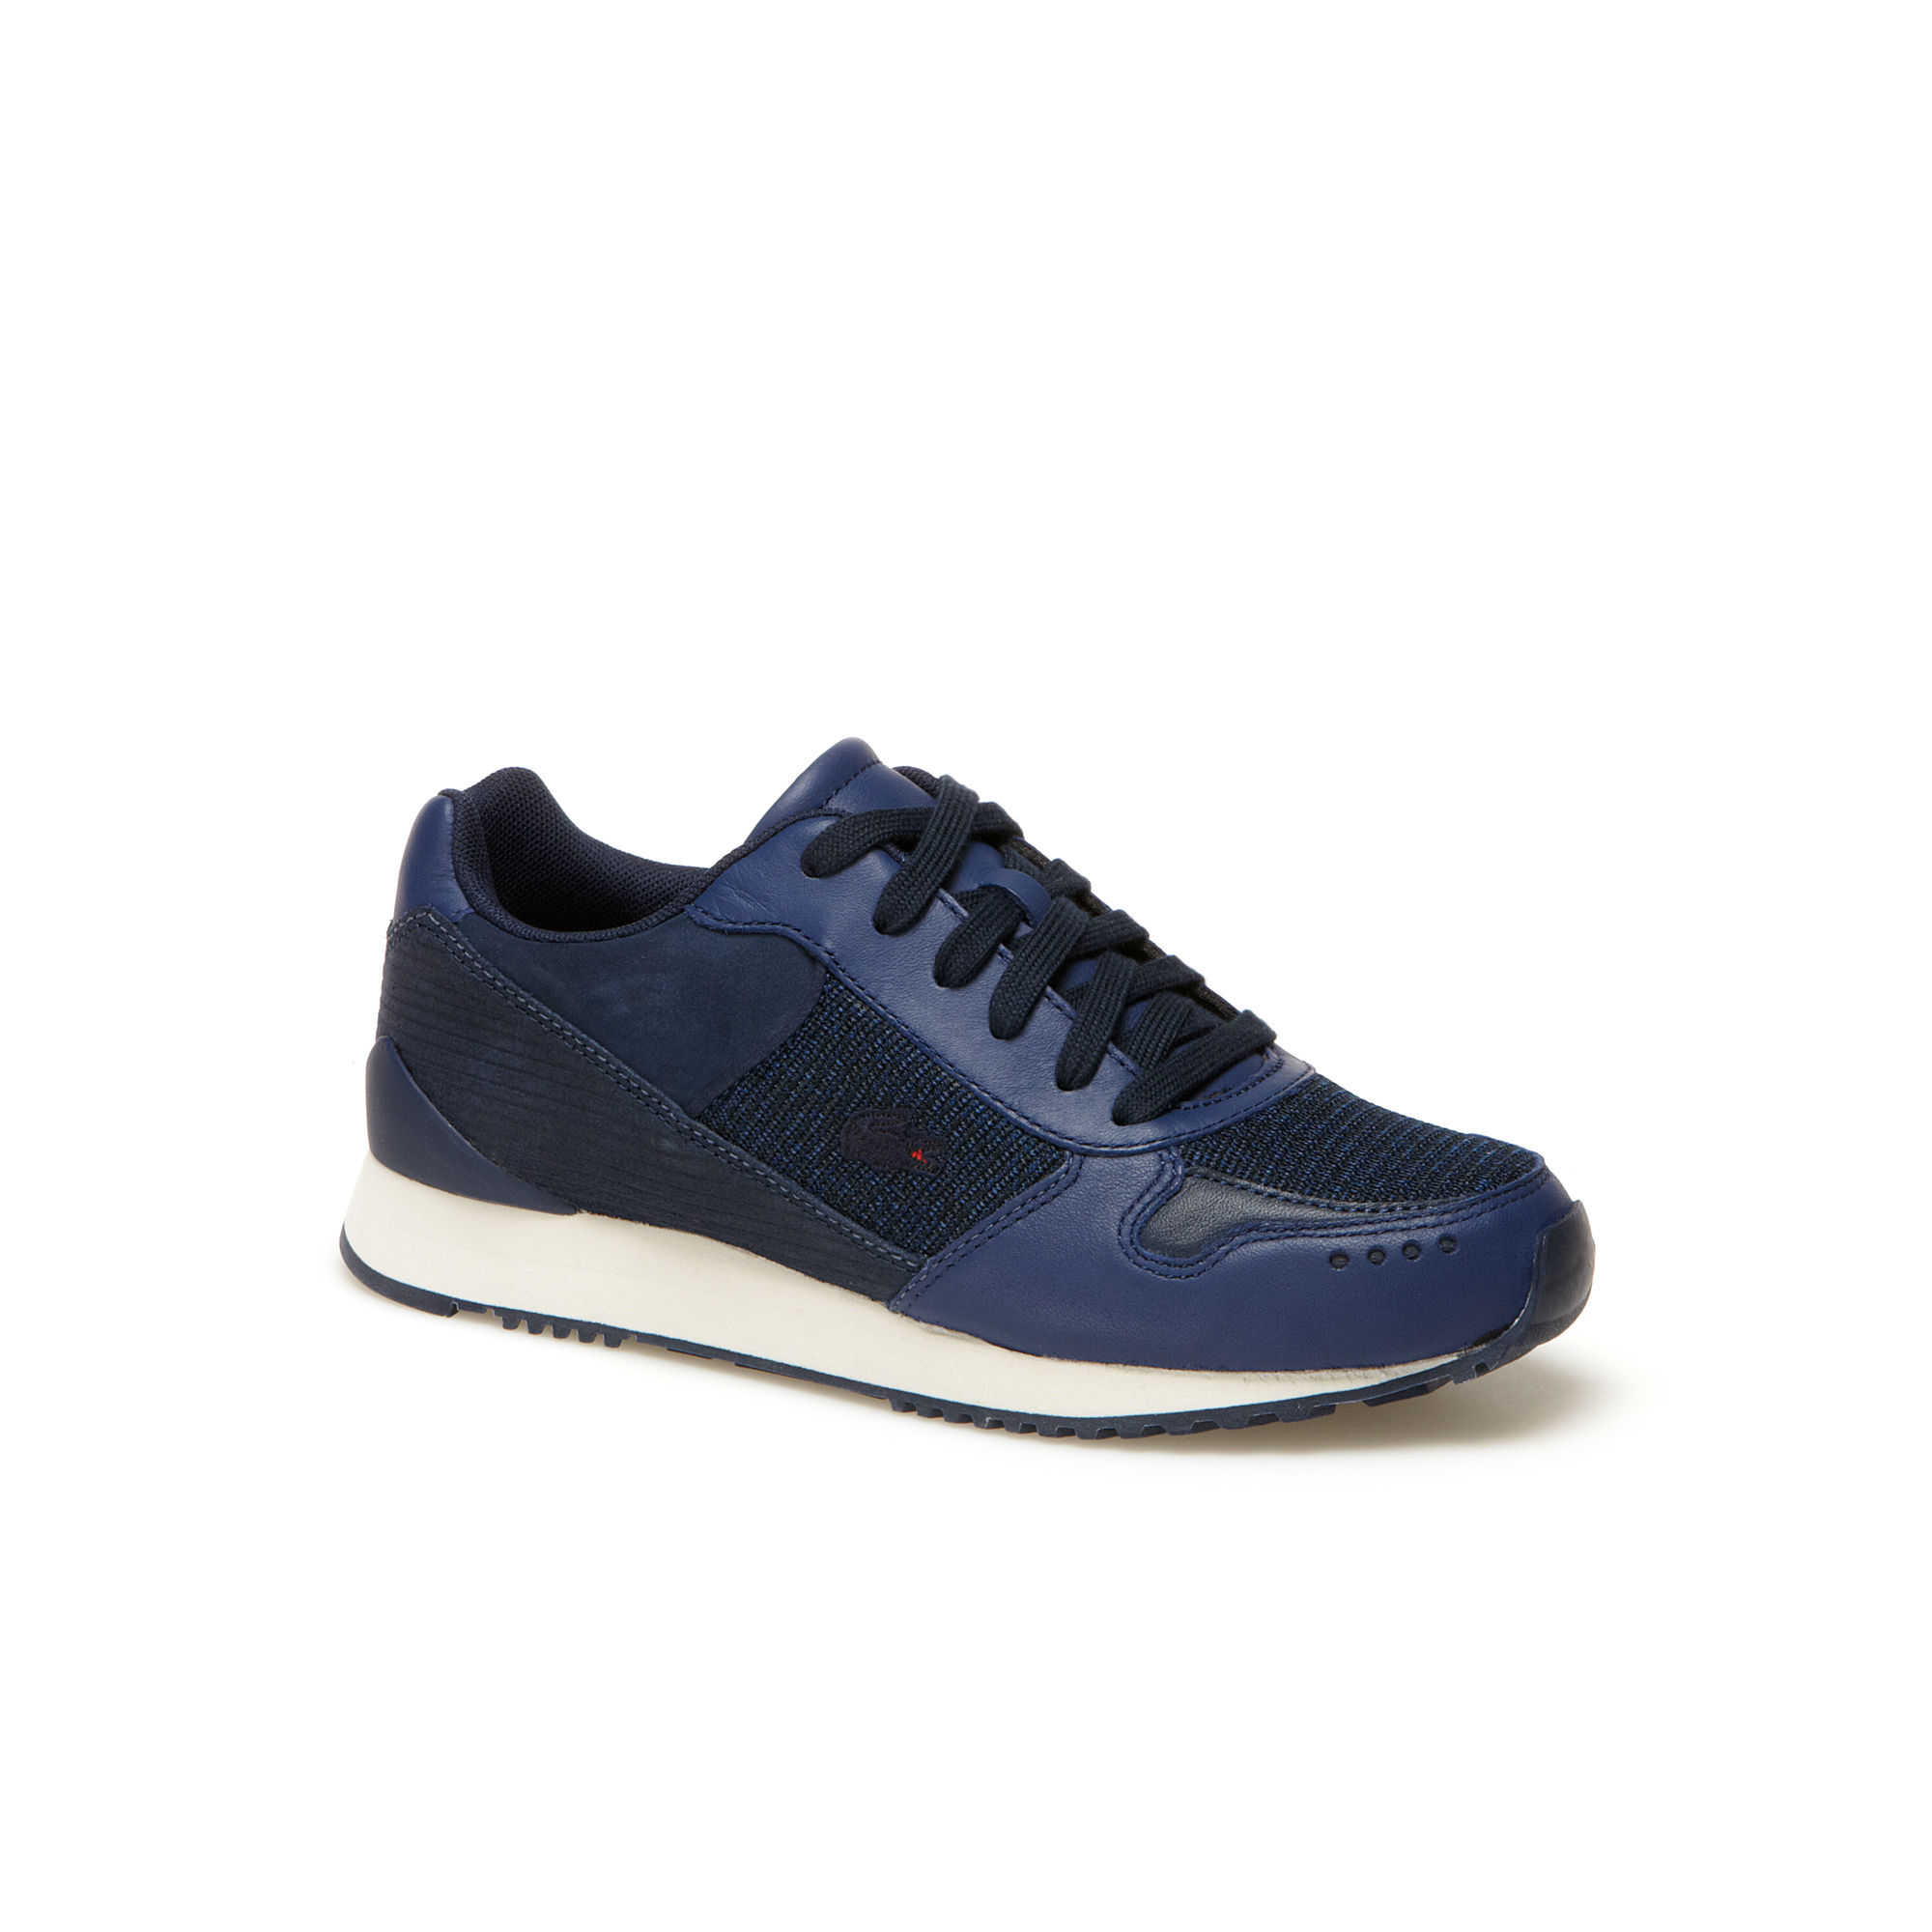 LACOSTE LIVE Trajet leather and nubuck running shoes, £85 ( lacoste.com )